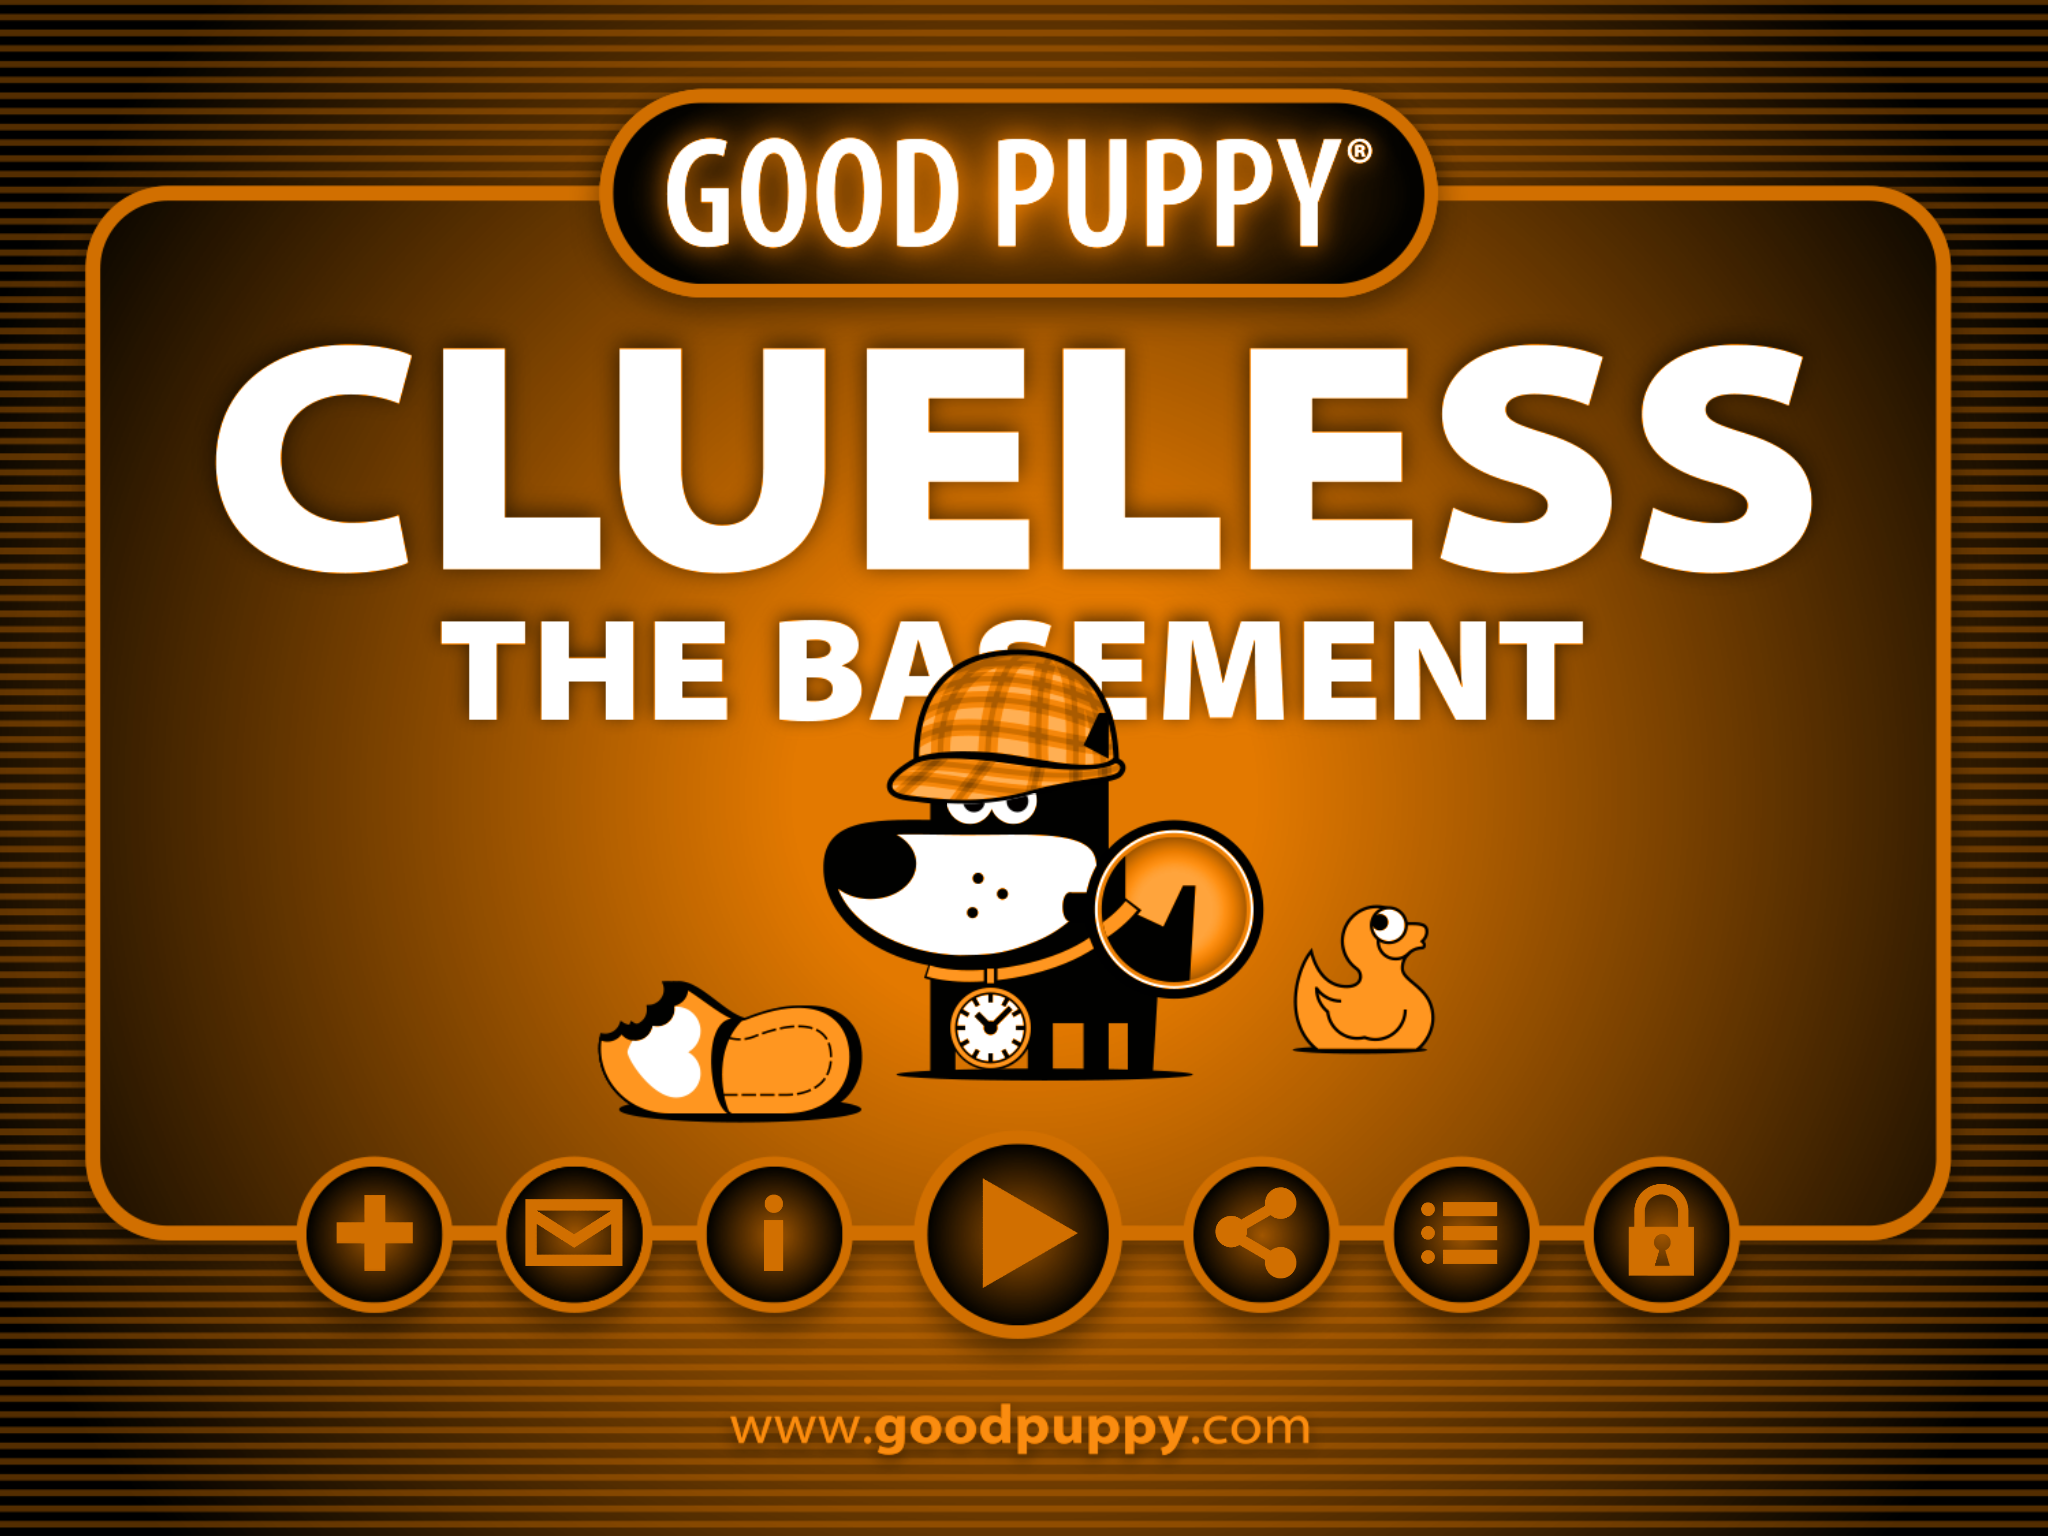 Retro-Platform-Action-Adventure-Game-GOOD-PUPPY-CLUELESS-1-Free-Download.PNG